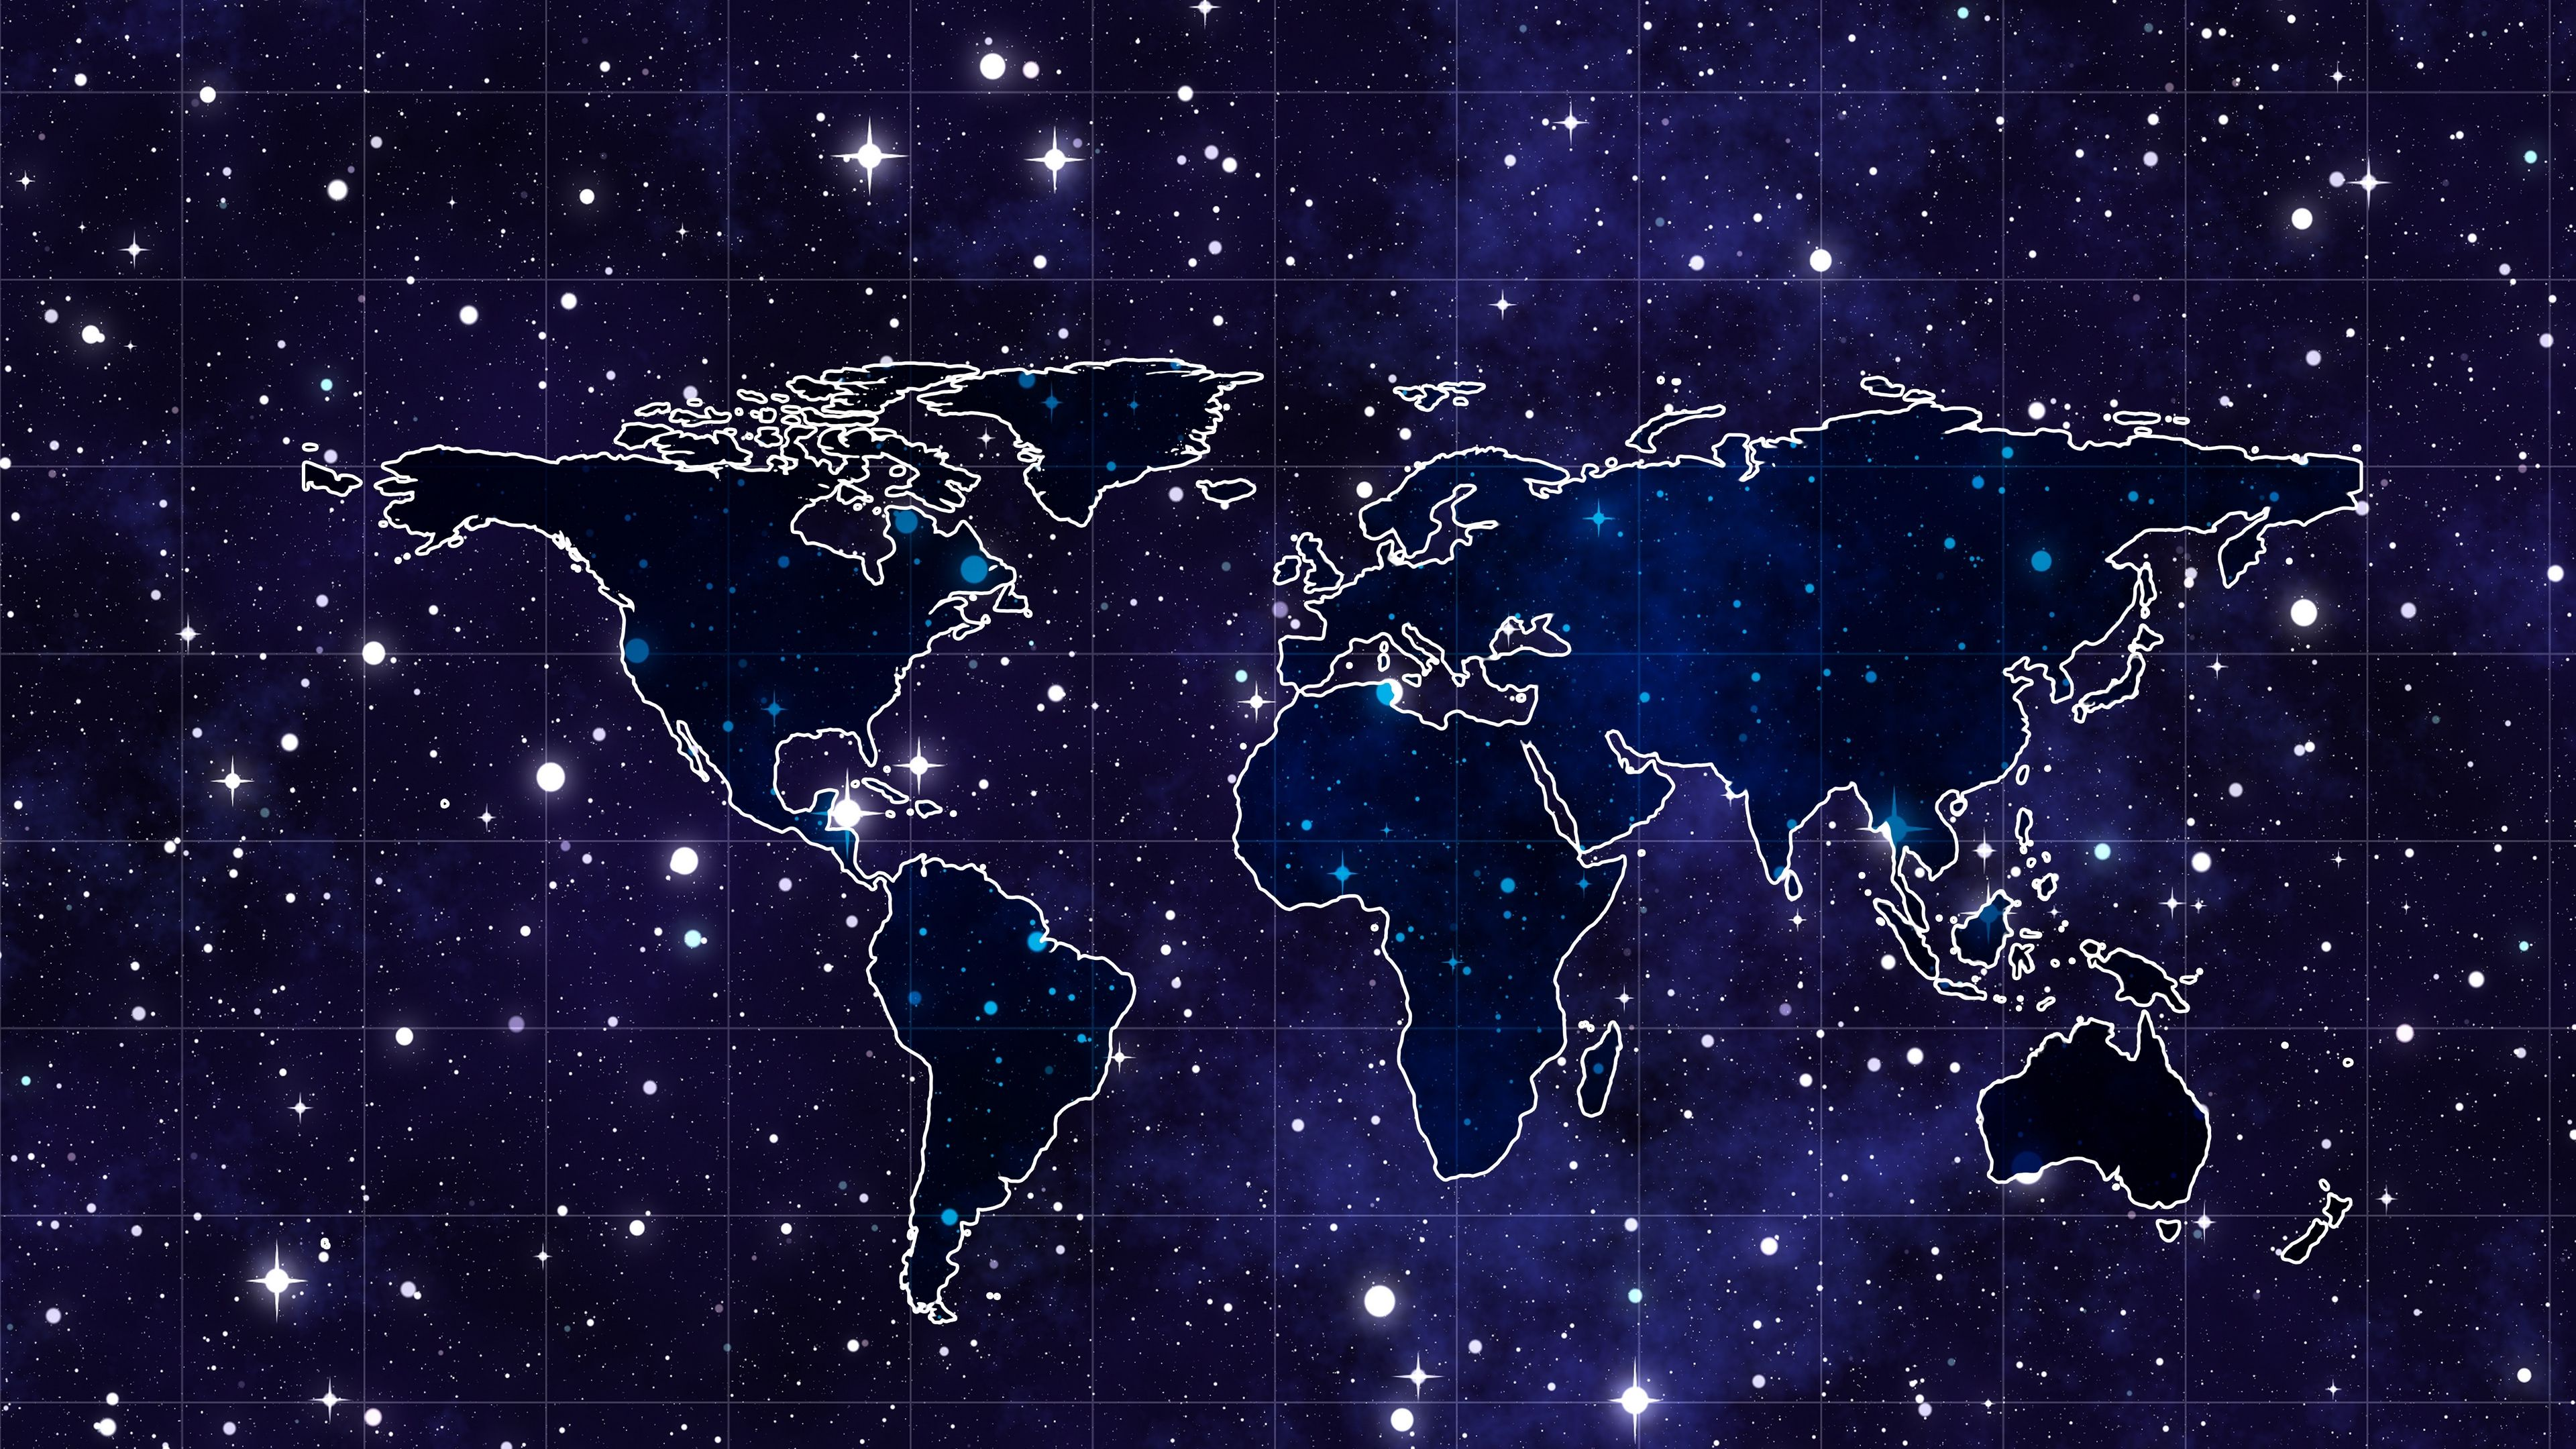 Space Continents Map 4k Space Map Continents In 2020 Wallpaper Space Laptop Wallpaper Desktop Wallpapers Wallpaper Notebook